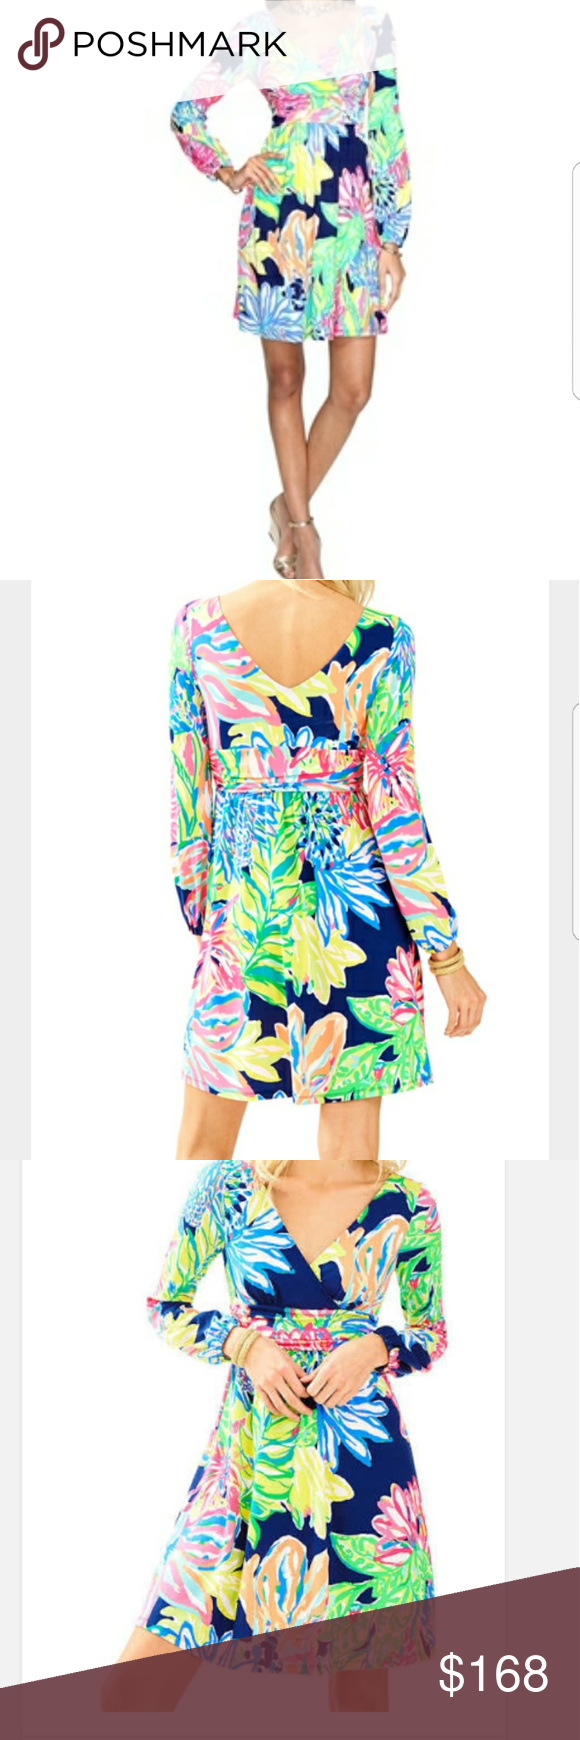 124123e79157bf Lilly Pulitzer Fleur dress Pattern: Resort navy Traveler's Palm Tags are  ripped off but have them Lilly Pulitzer Dresses Mini